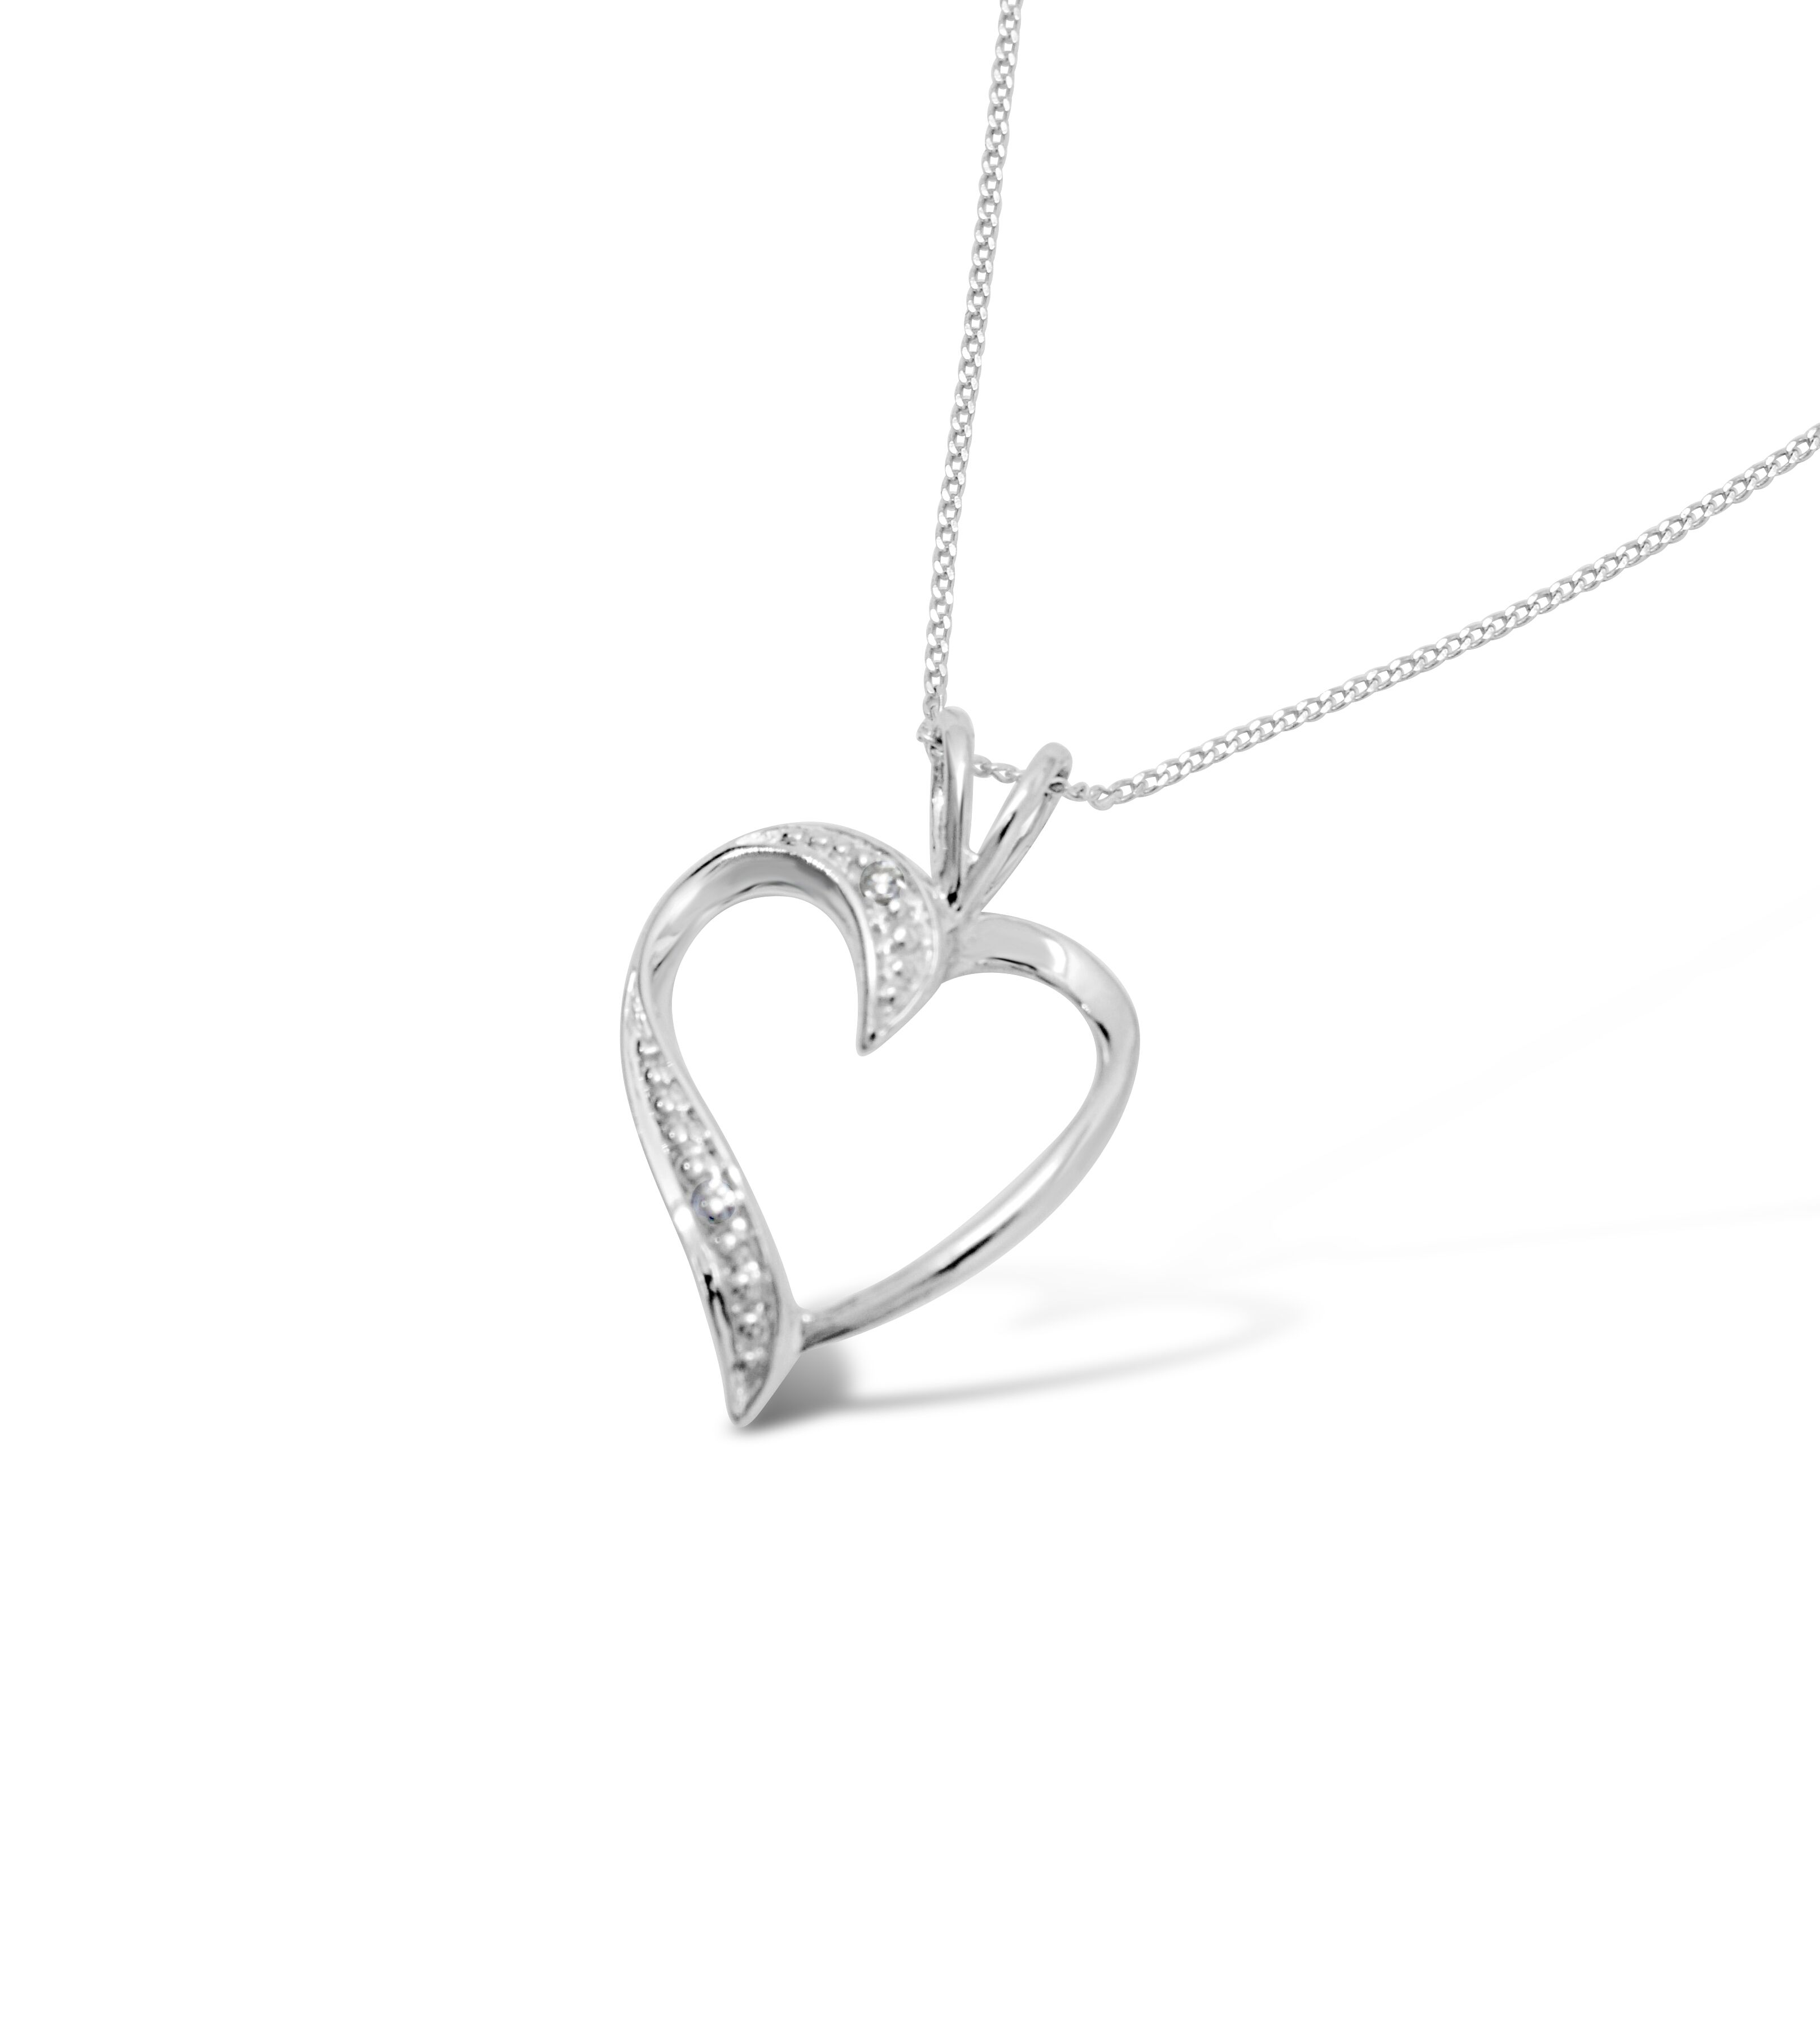 Heart Shaped Diamond Pendant With a 9ct Gold Chain RRP £225